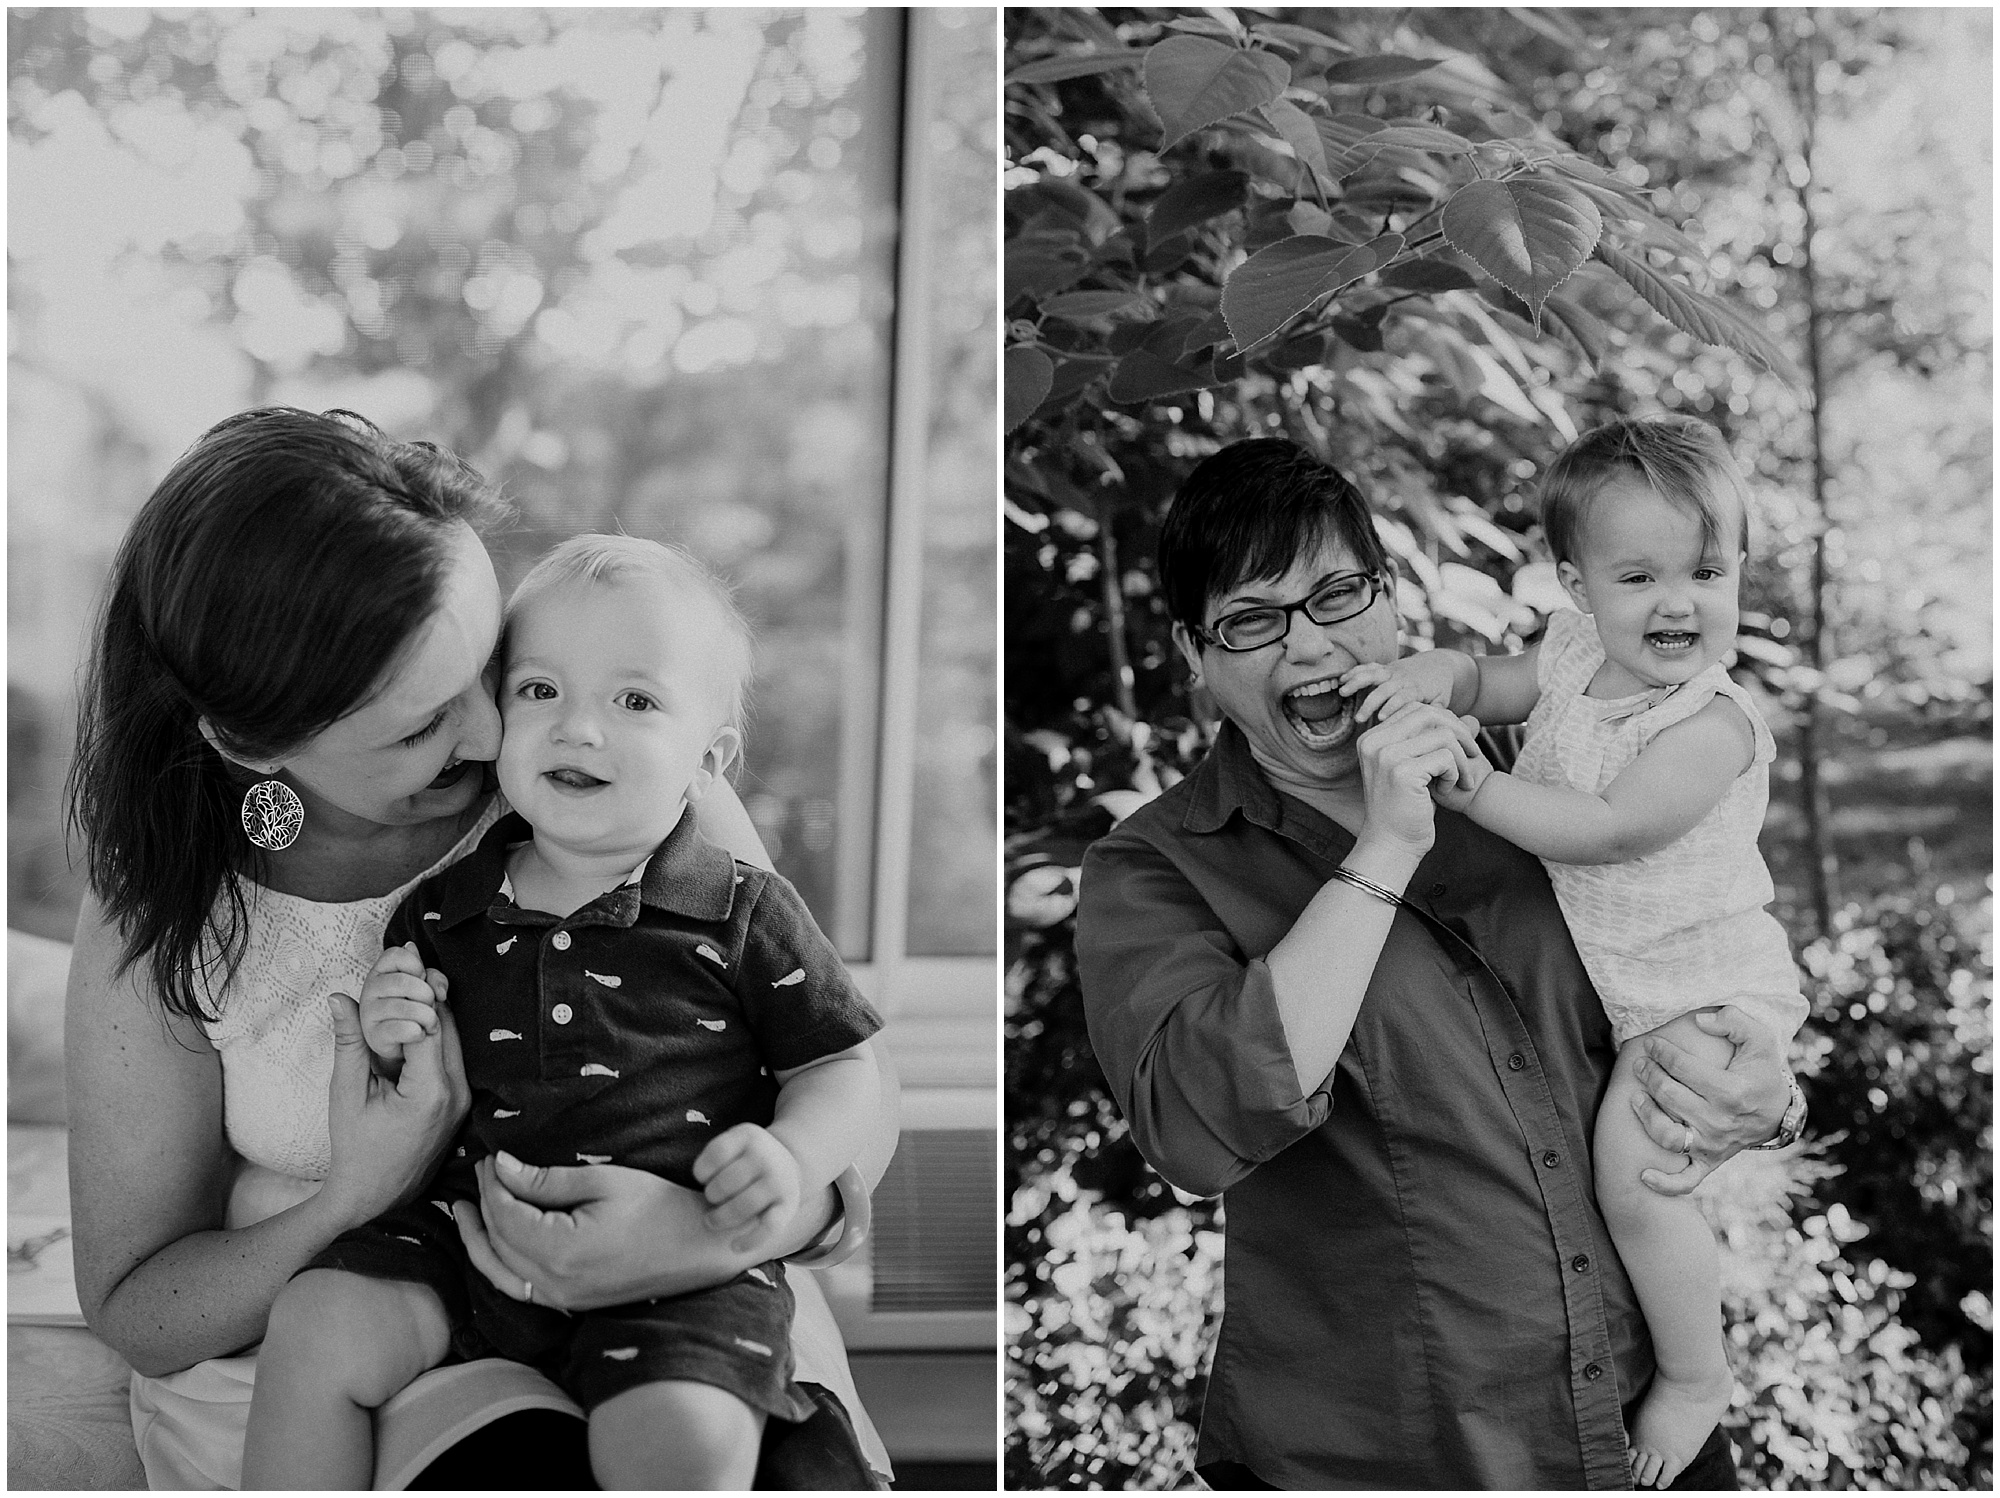 Mother's Day in black and white, by Emily Lapish Photography